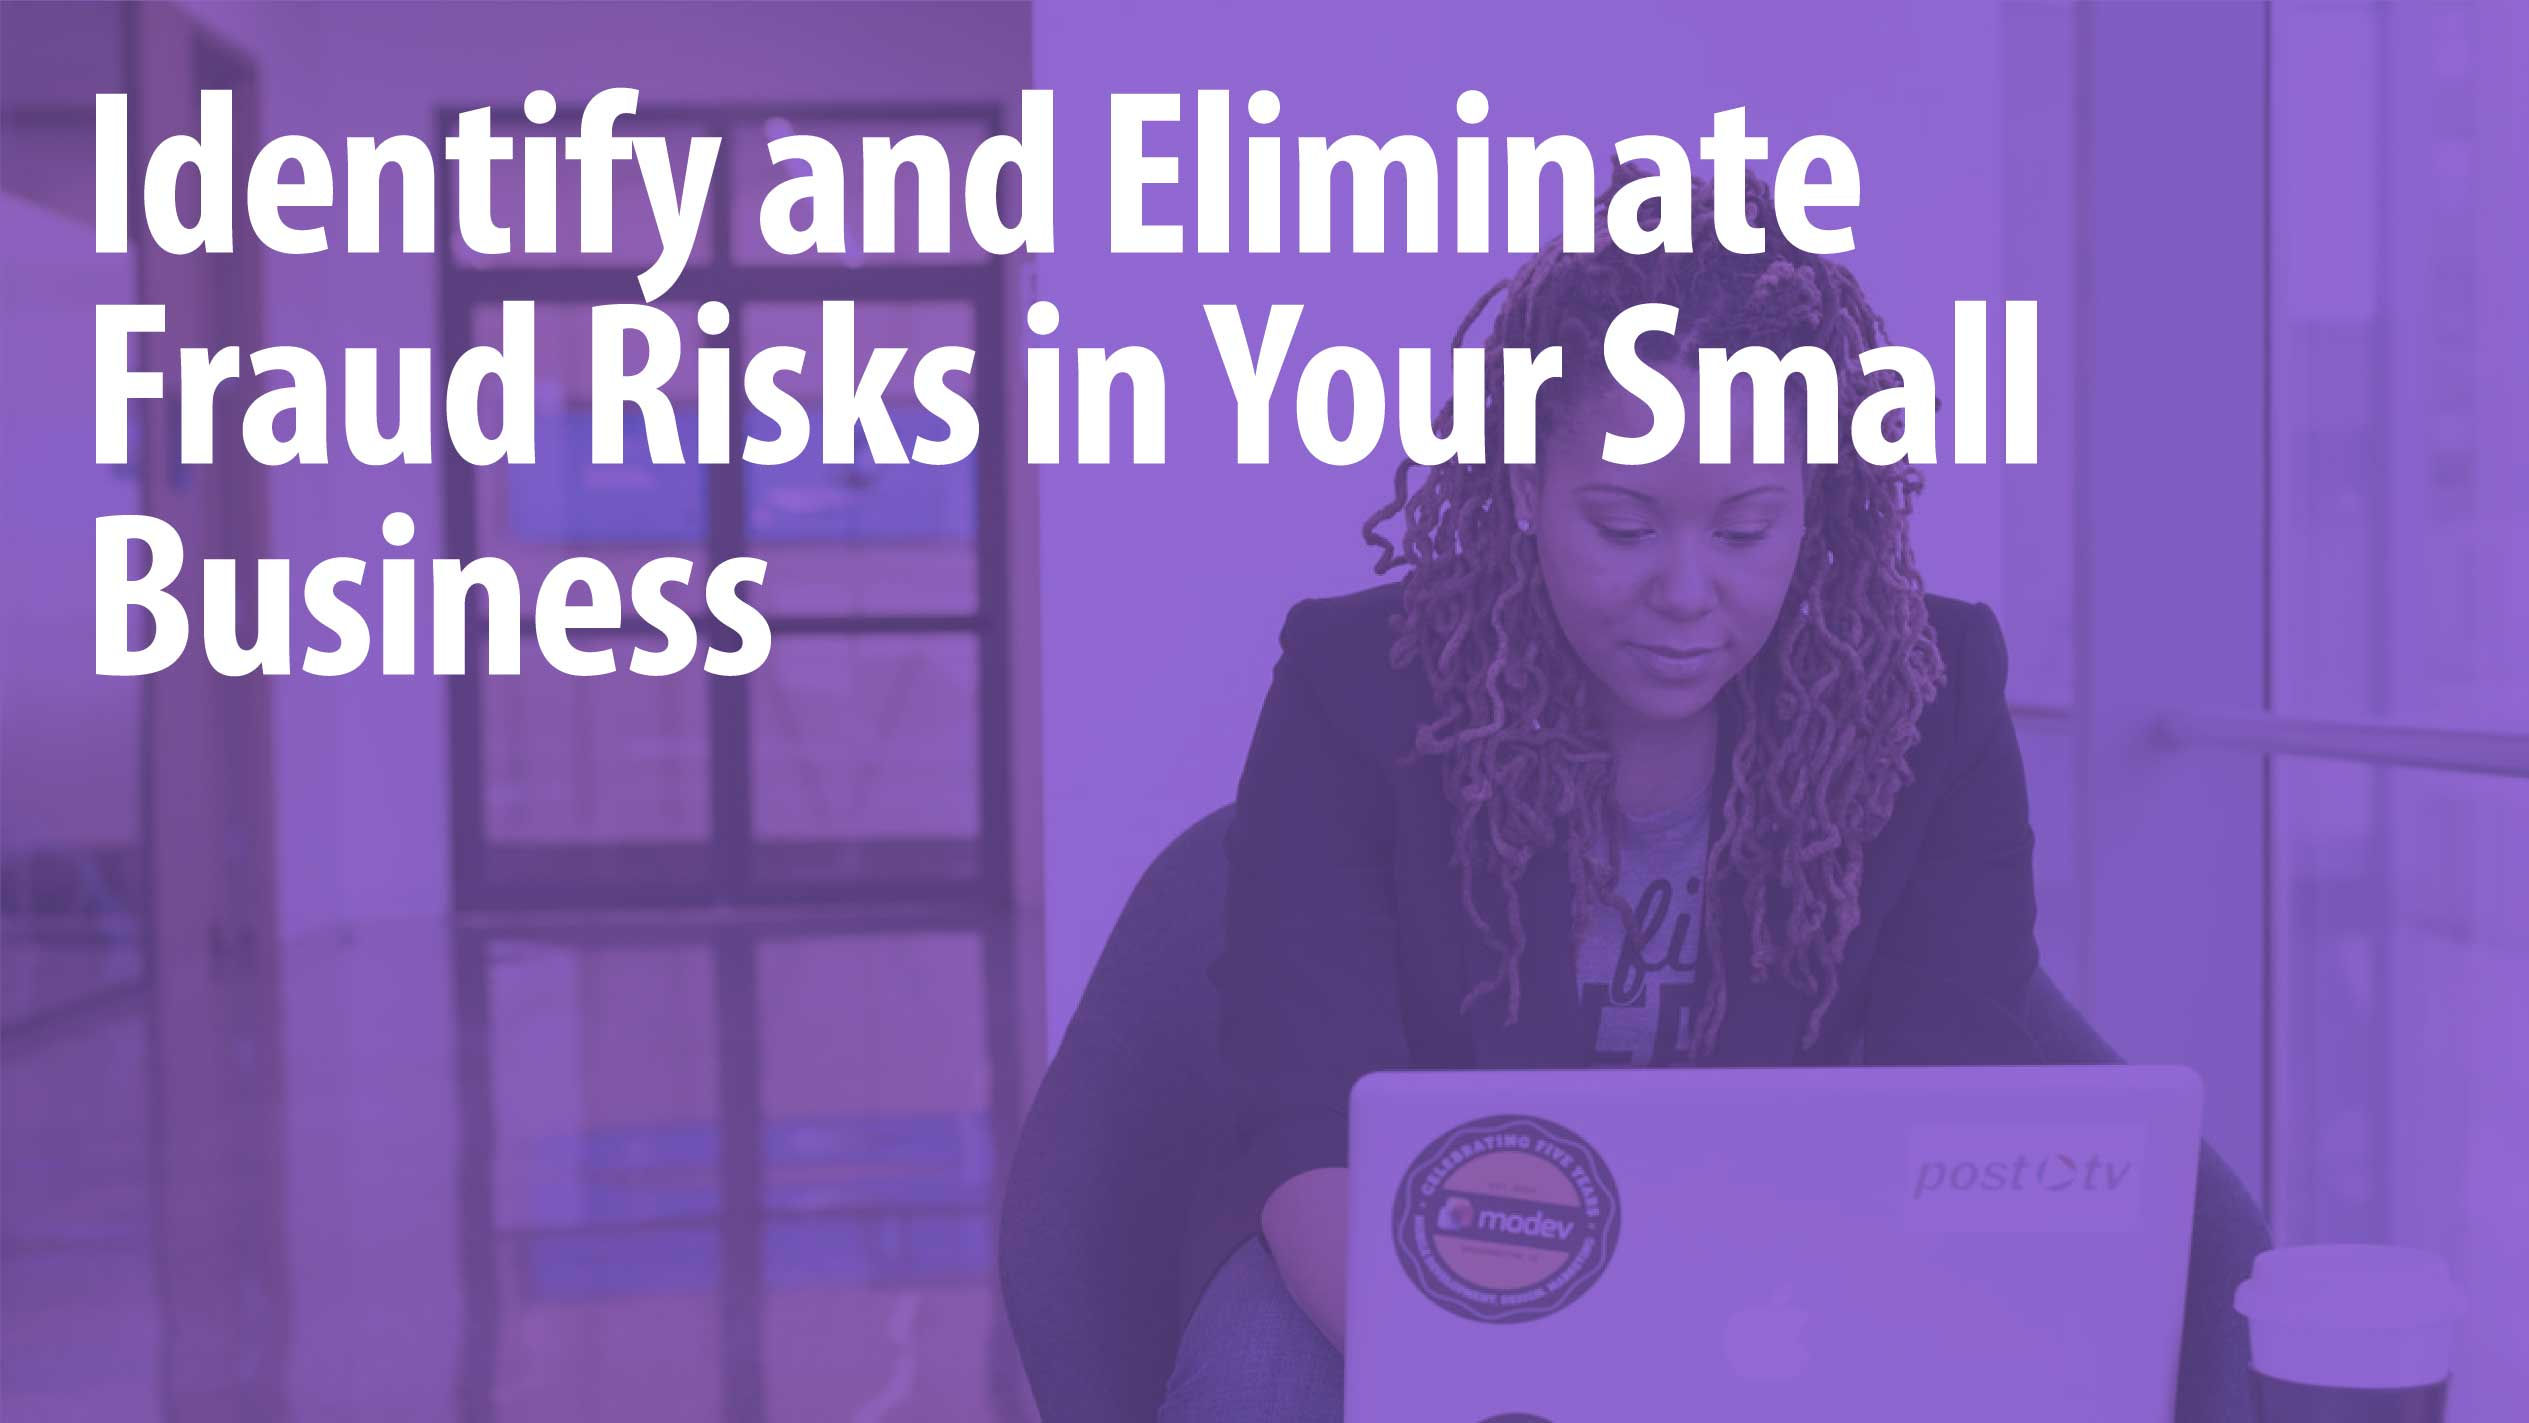 Identify and Eliminate Fraud Risks in Your Small Business